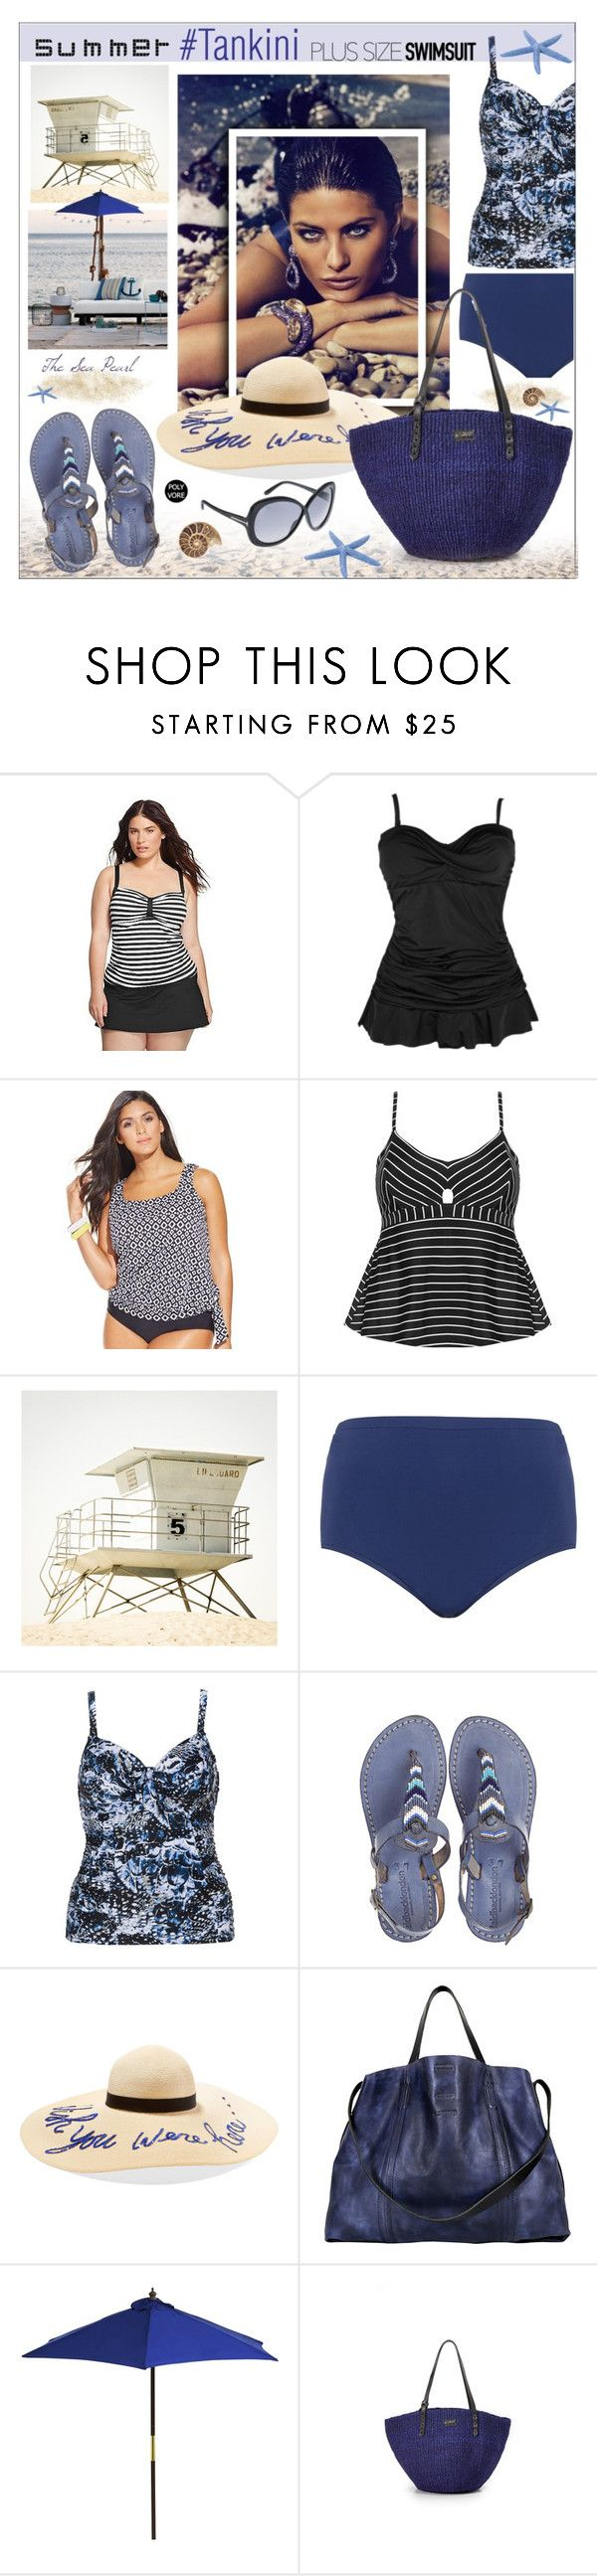 """Stylish Curves: Tankini"" by theseapearl ❤ liked on Polyvore featuring Clean Water, Swim Solutions, Cactus, Maxine Of Hollywood, Robyn Lawley, Laidback London, Eugenia Kim, Old Trend, Pier 1 Imports and Clare V."